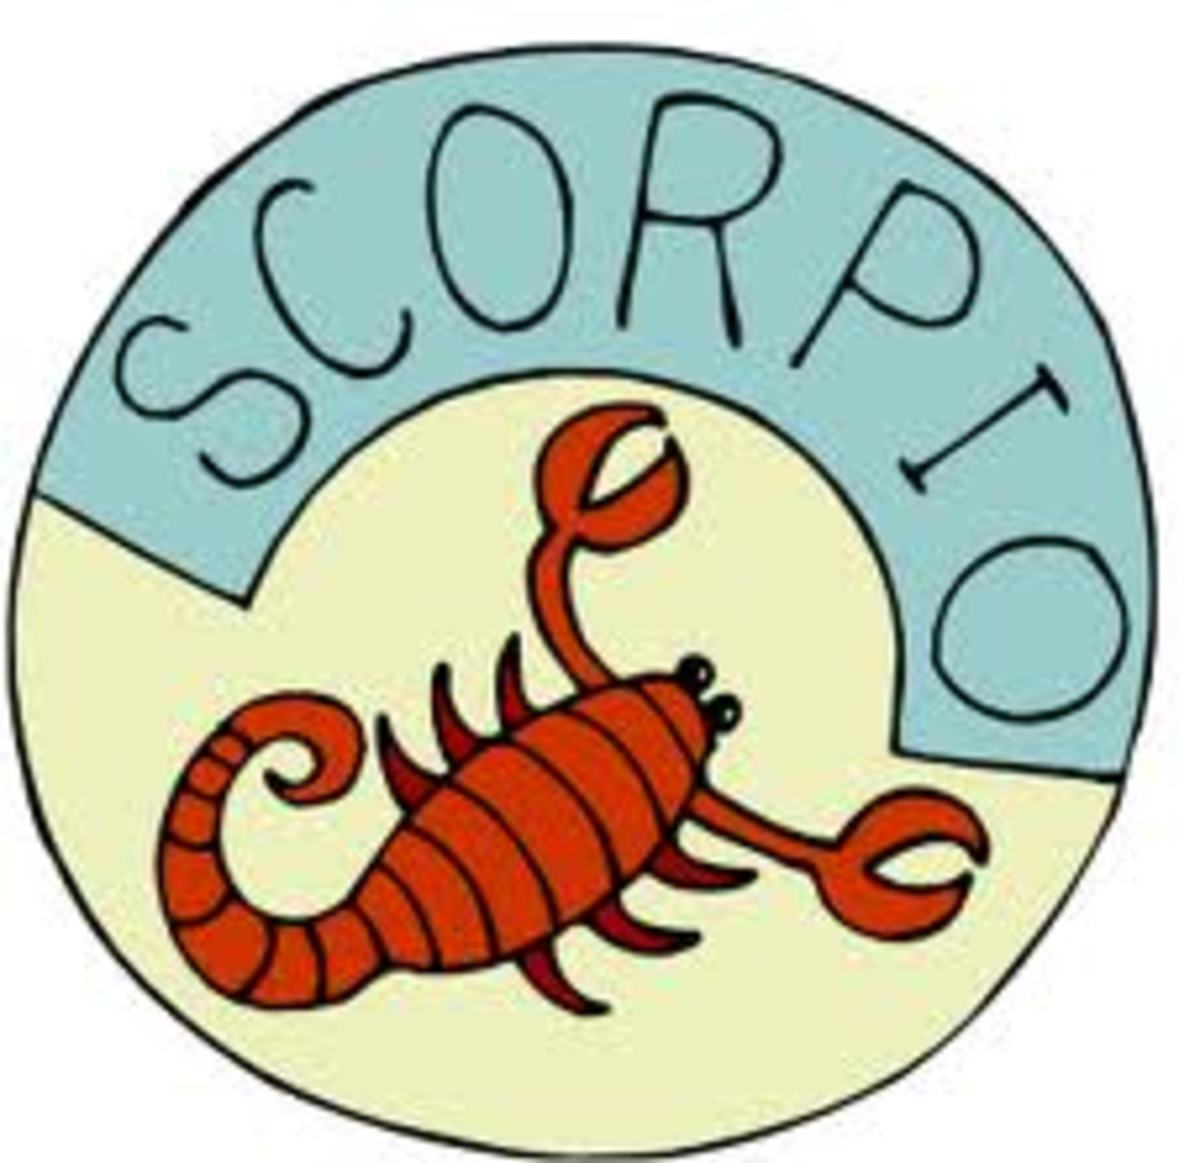 Getting to Know the Real Personality Behind the Scorpio Zodiac Sign